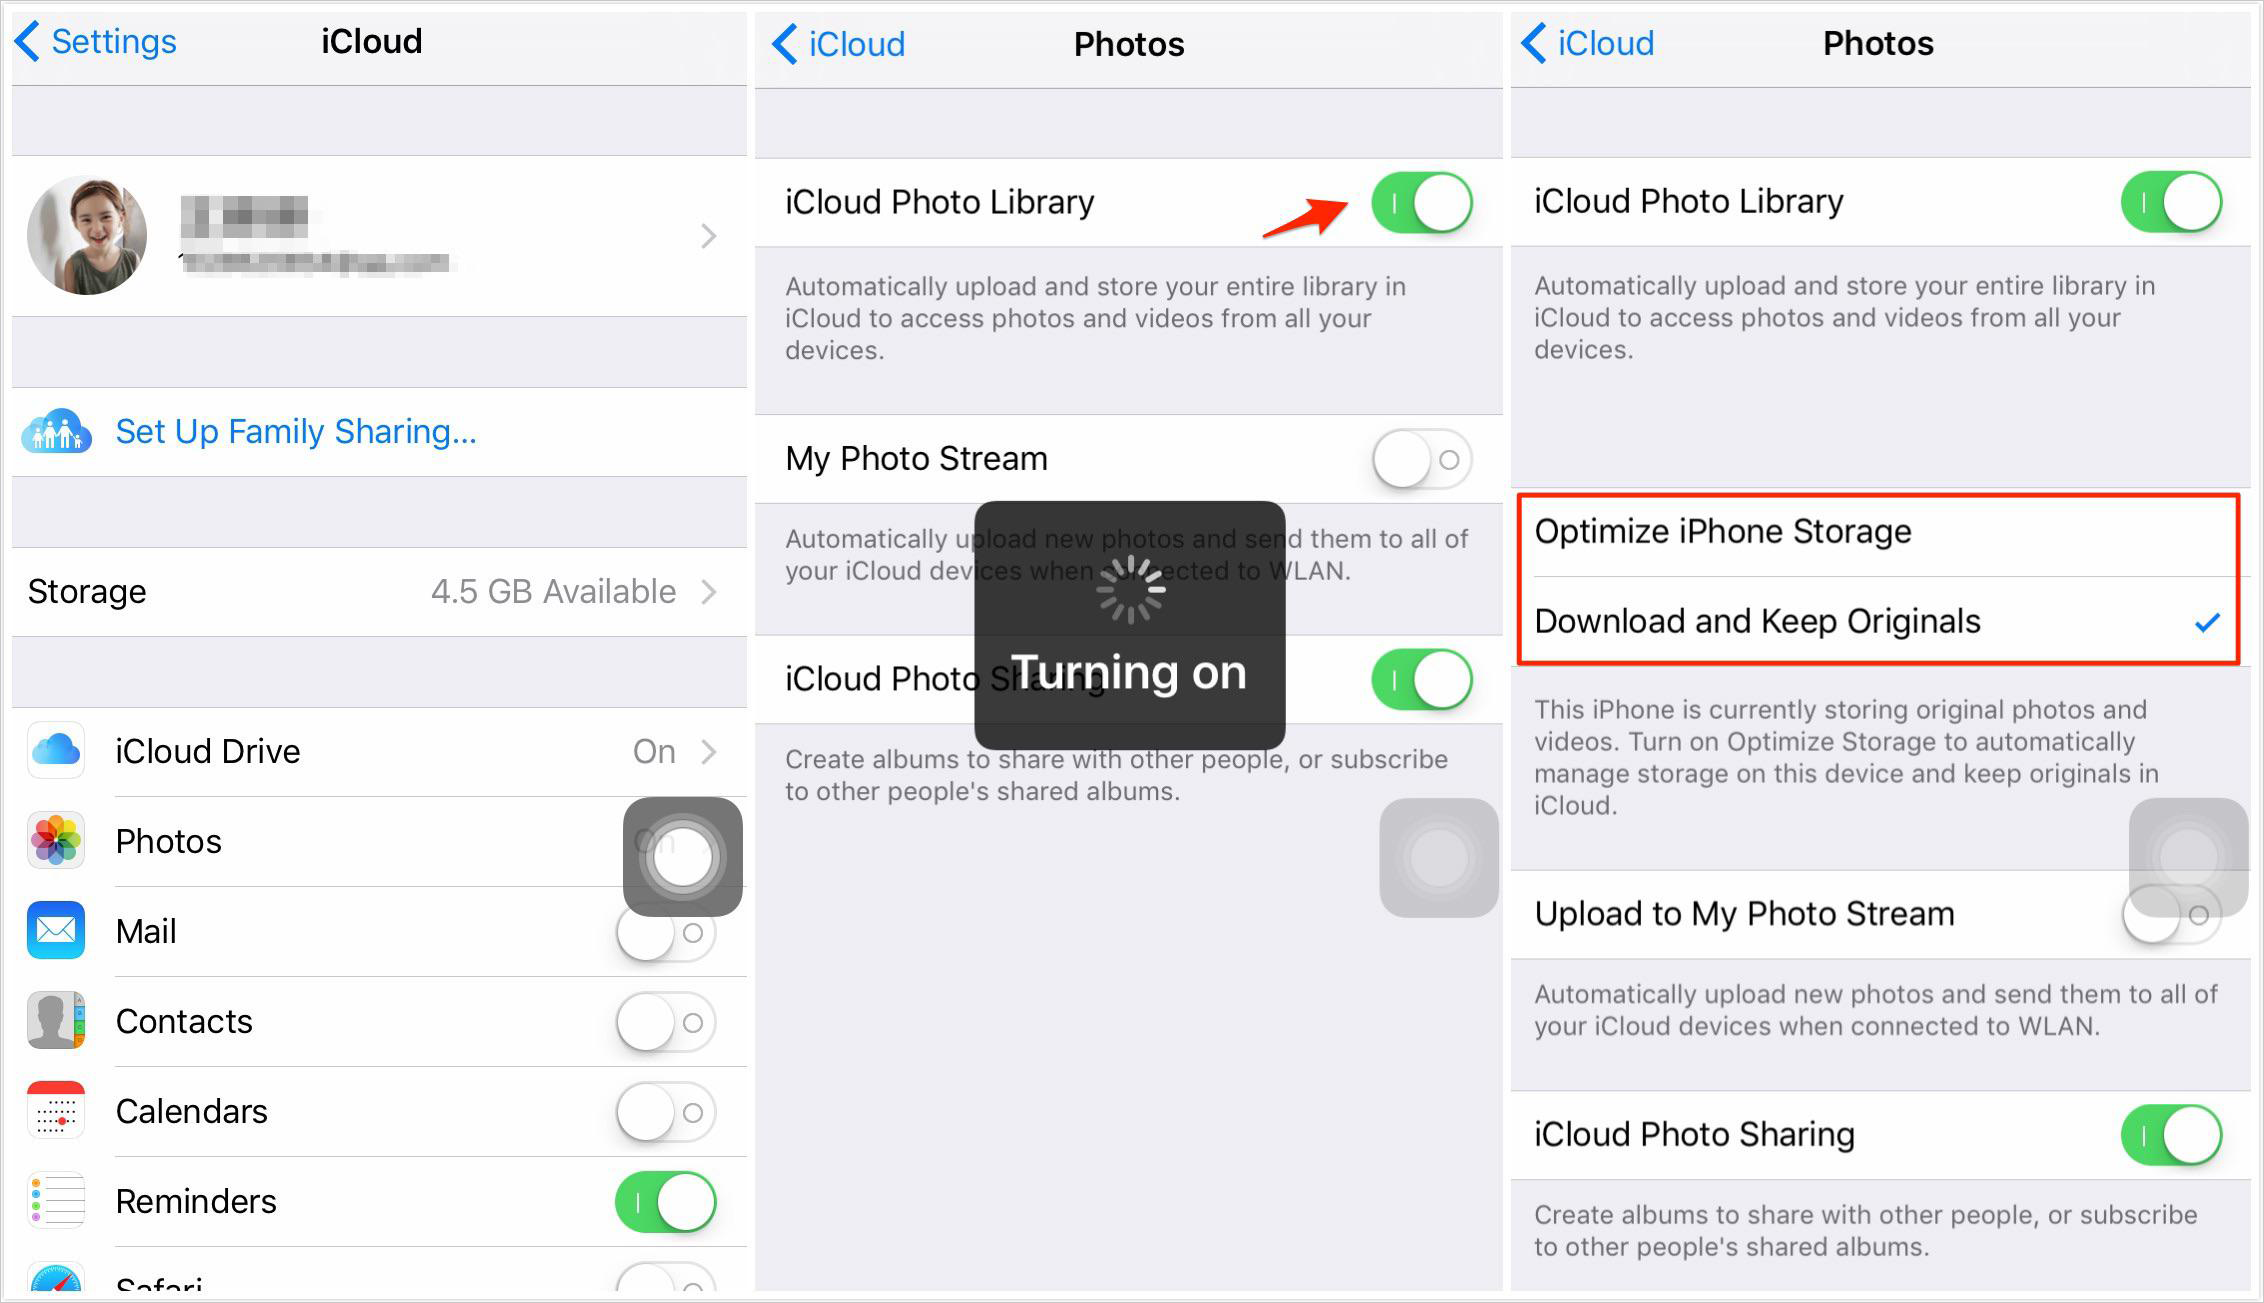 How to upload on iPhone